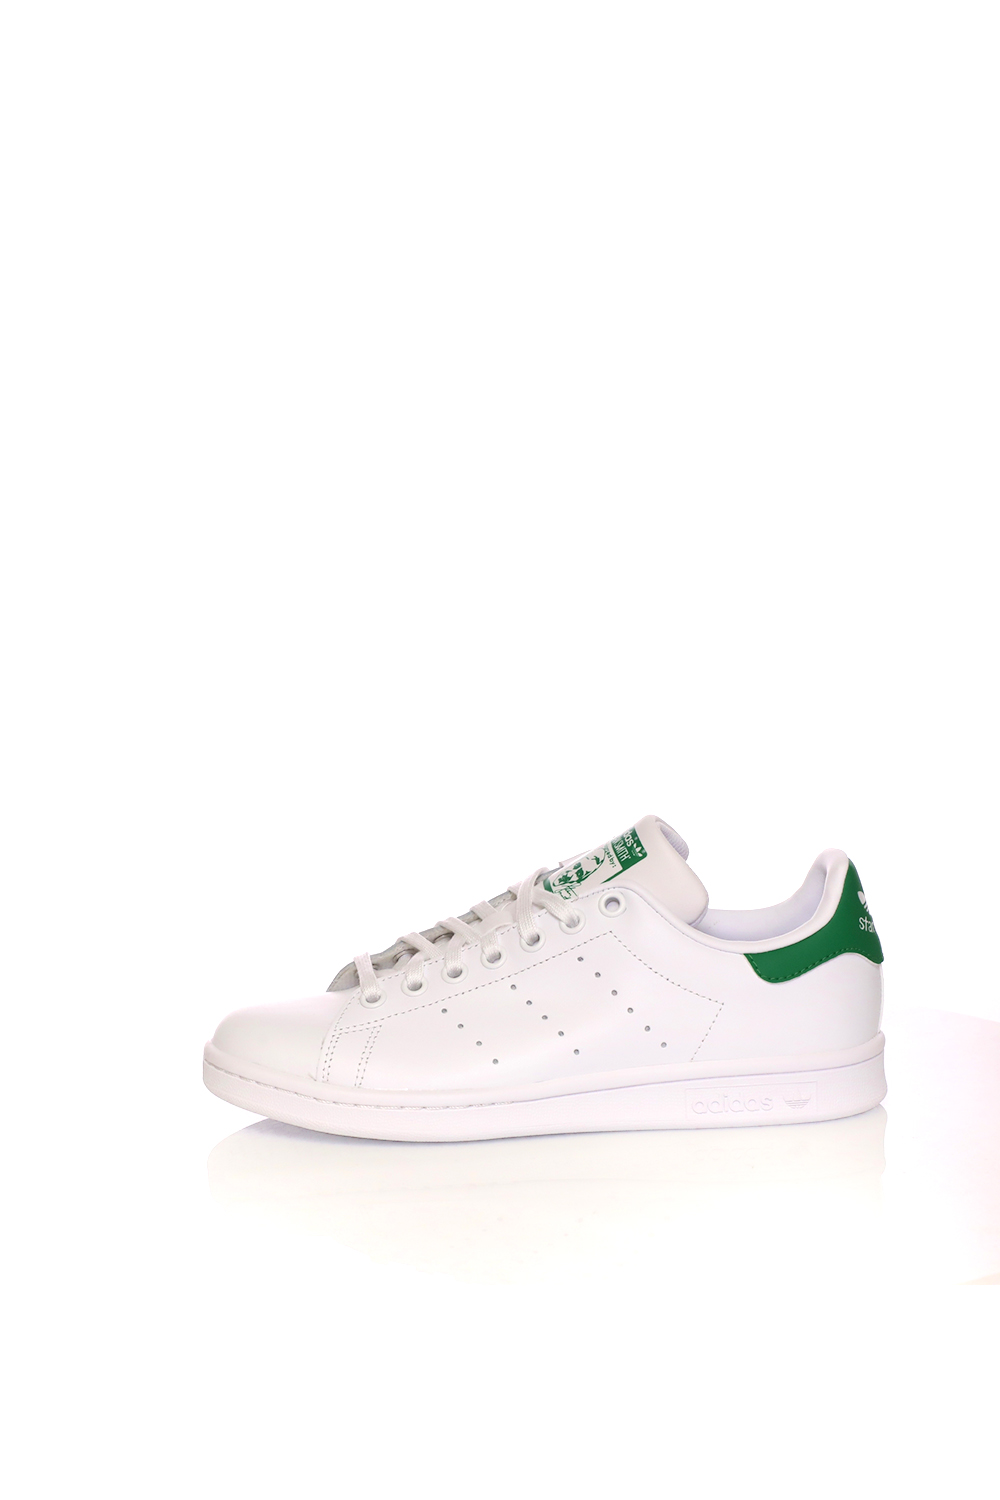 8744131e1fd Collective Online adidas Originals – Παιδικά παπούτσια STAN SMITH J λευκά